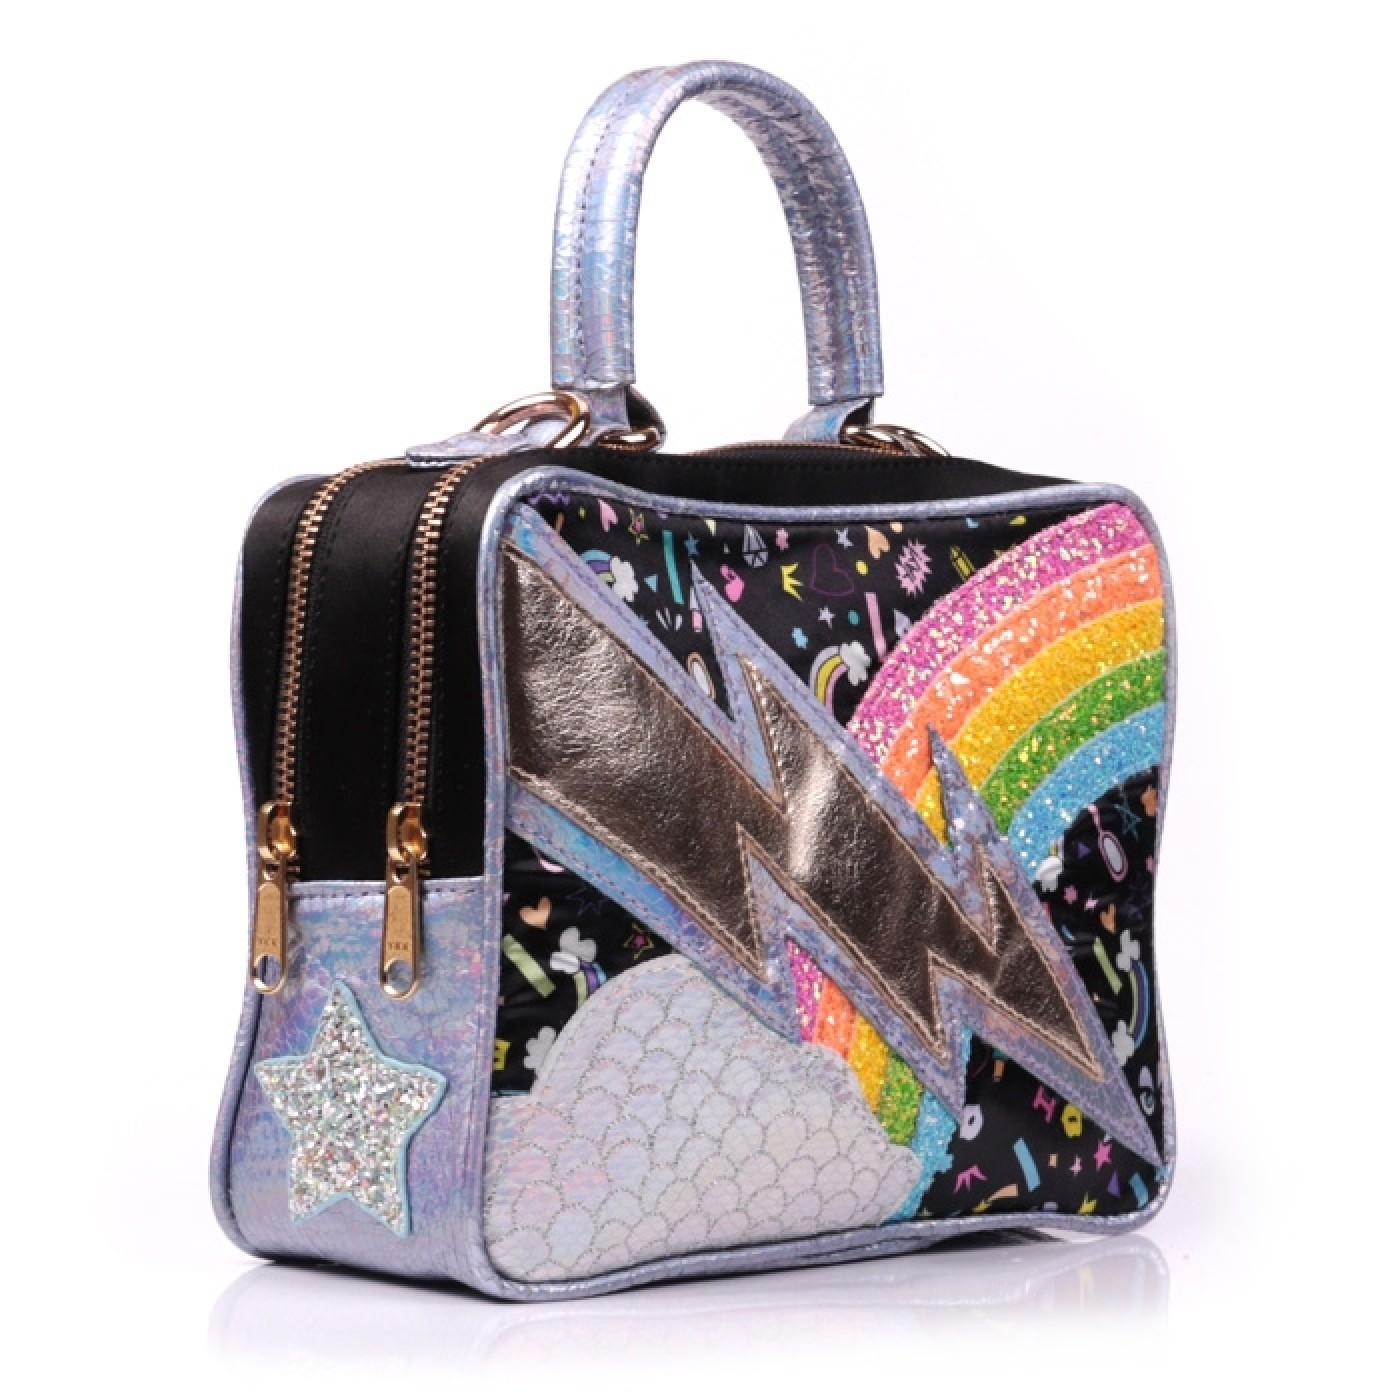 Rainbow Thunder Bag